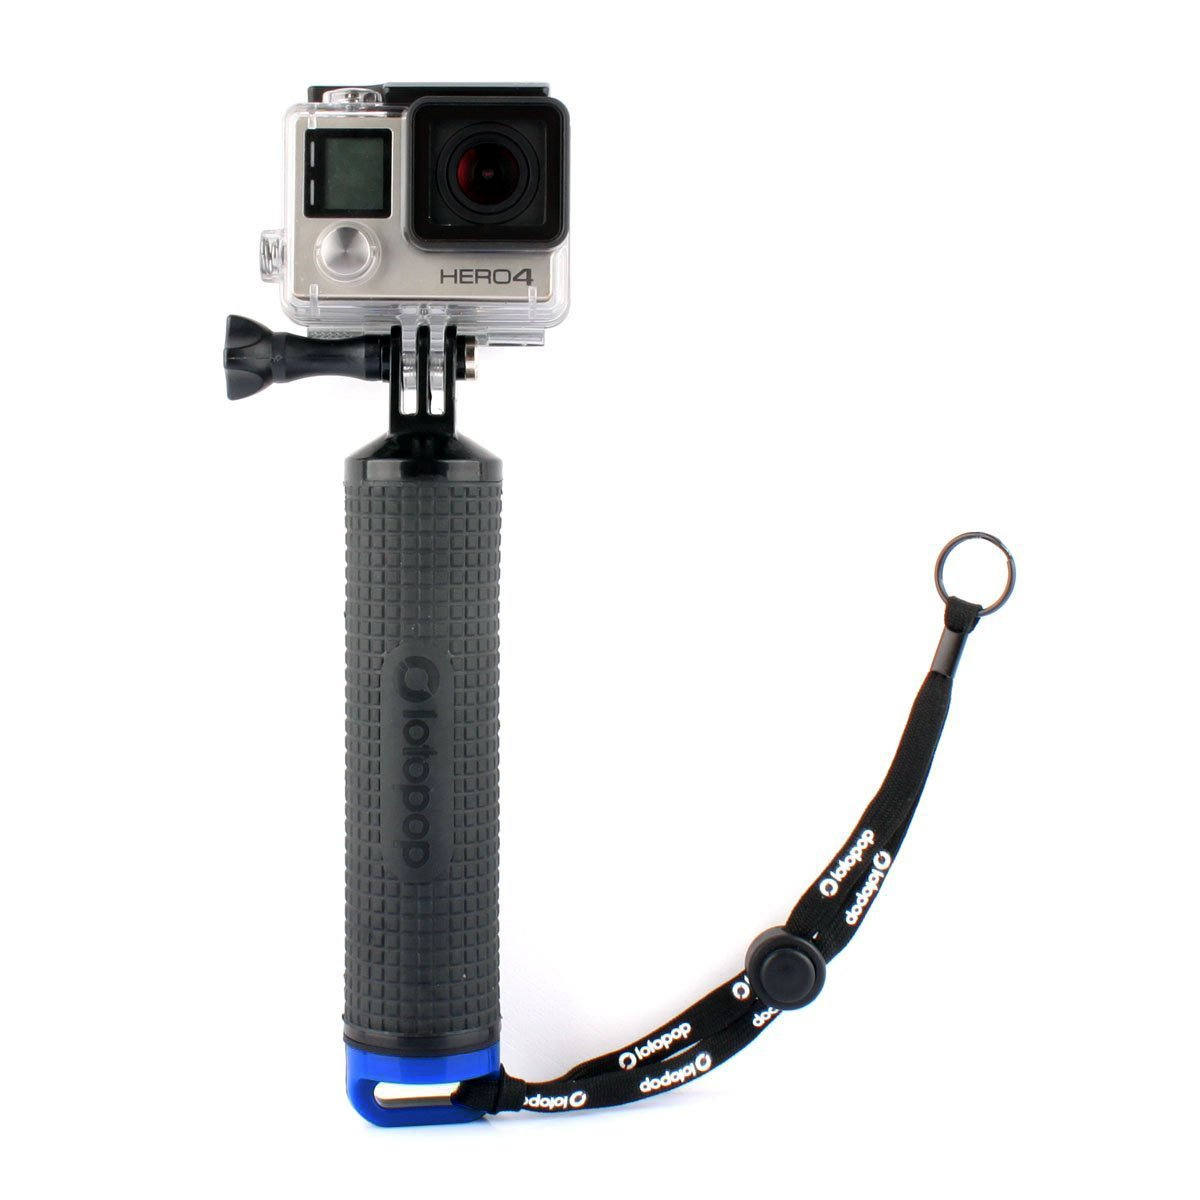 LOTOPOP Waterproof Floating Hand Grip for Gopro Hero 5 3+ 4 Session 3 - Handle Mount Accessories and Water Sport Pole for GeekPro 3.0 and ASX Action Pro Cameras Action Camera Accessories-Blue